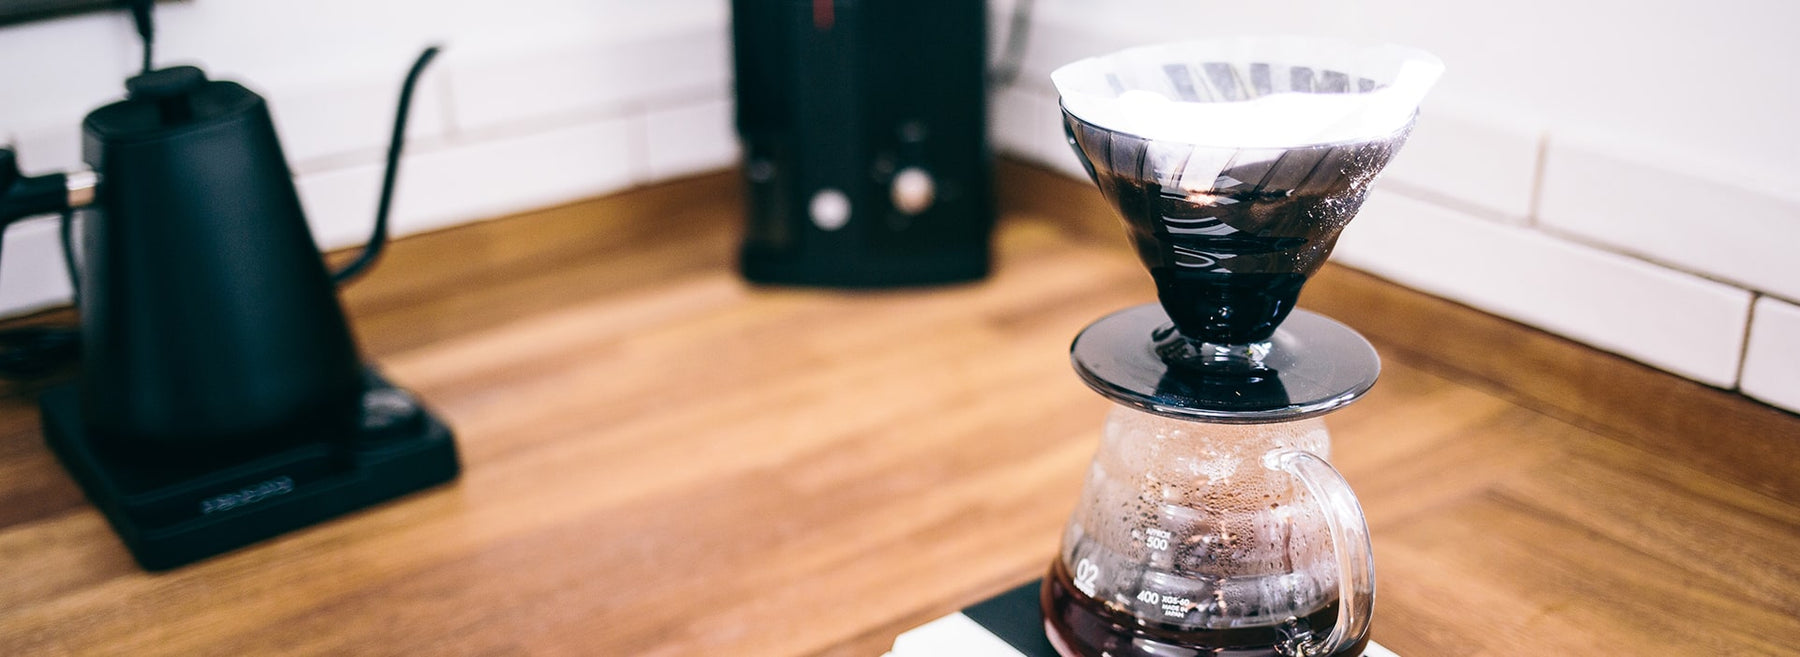 How to Brew Coffee with Hario V60 Coffee Dripper